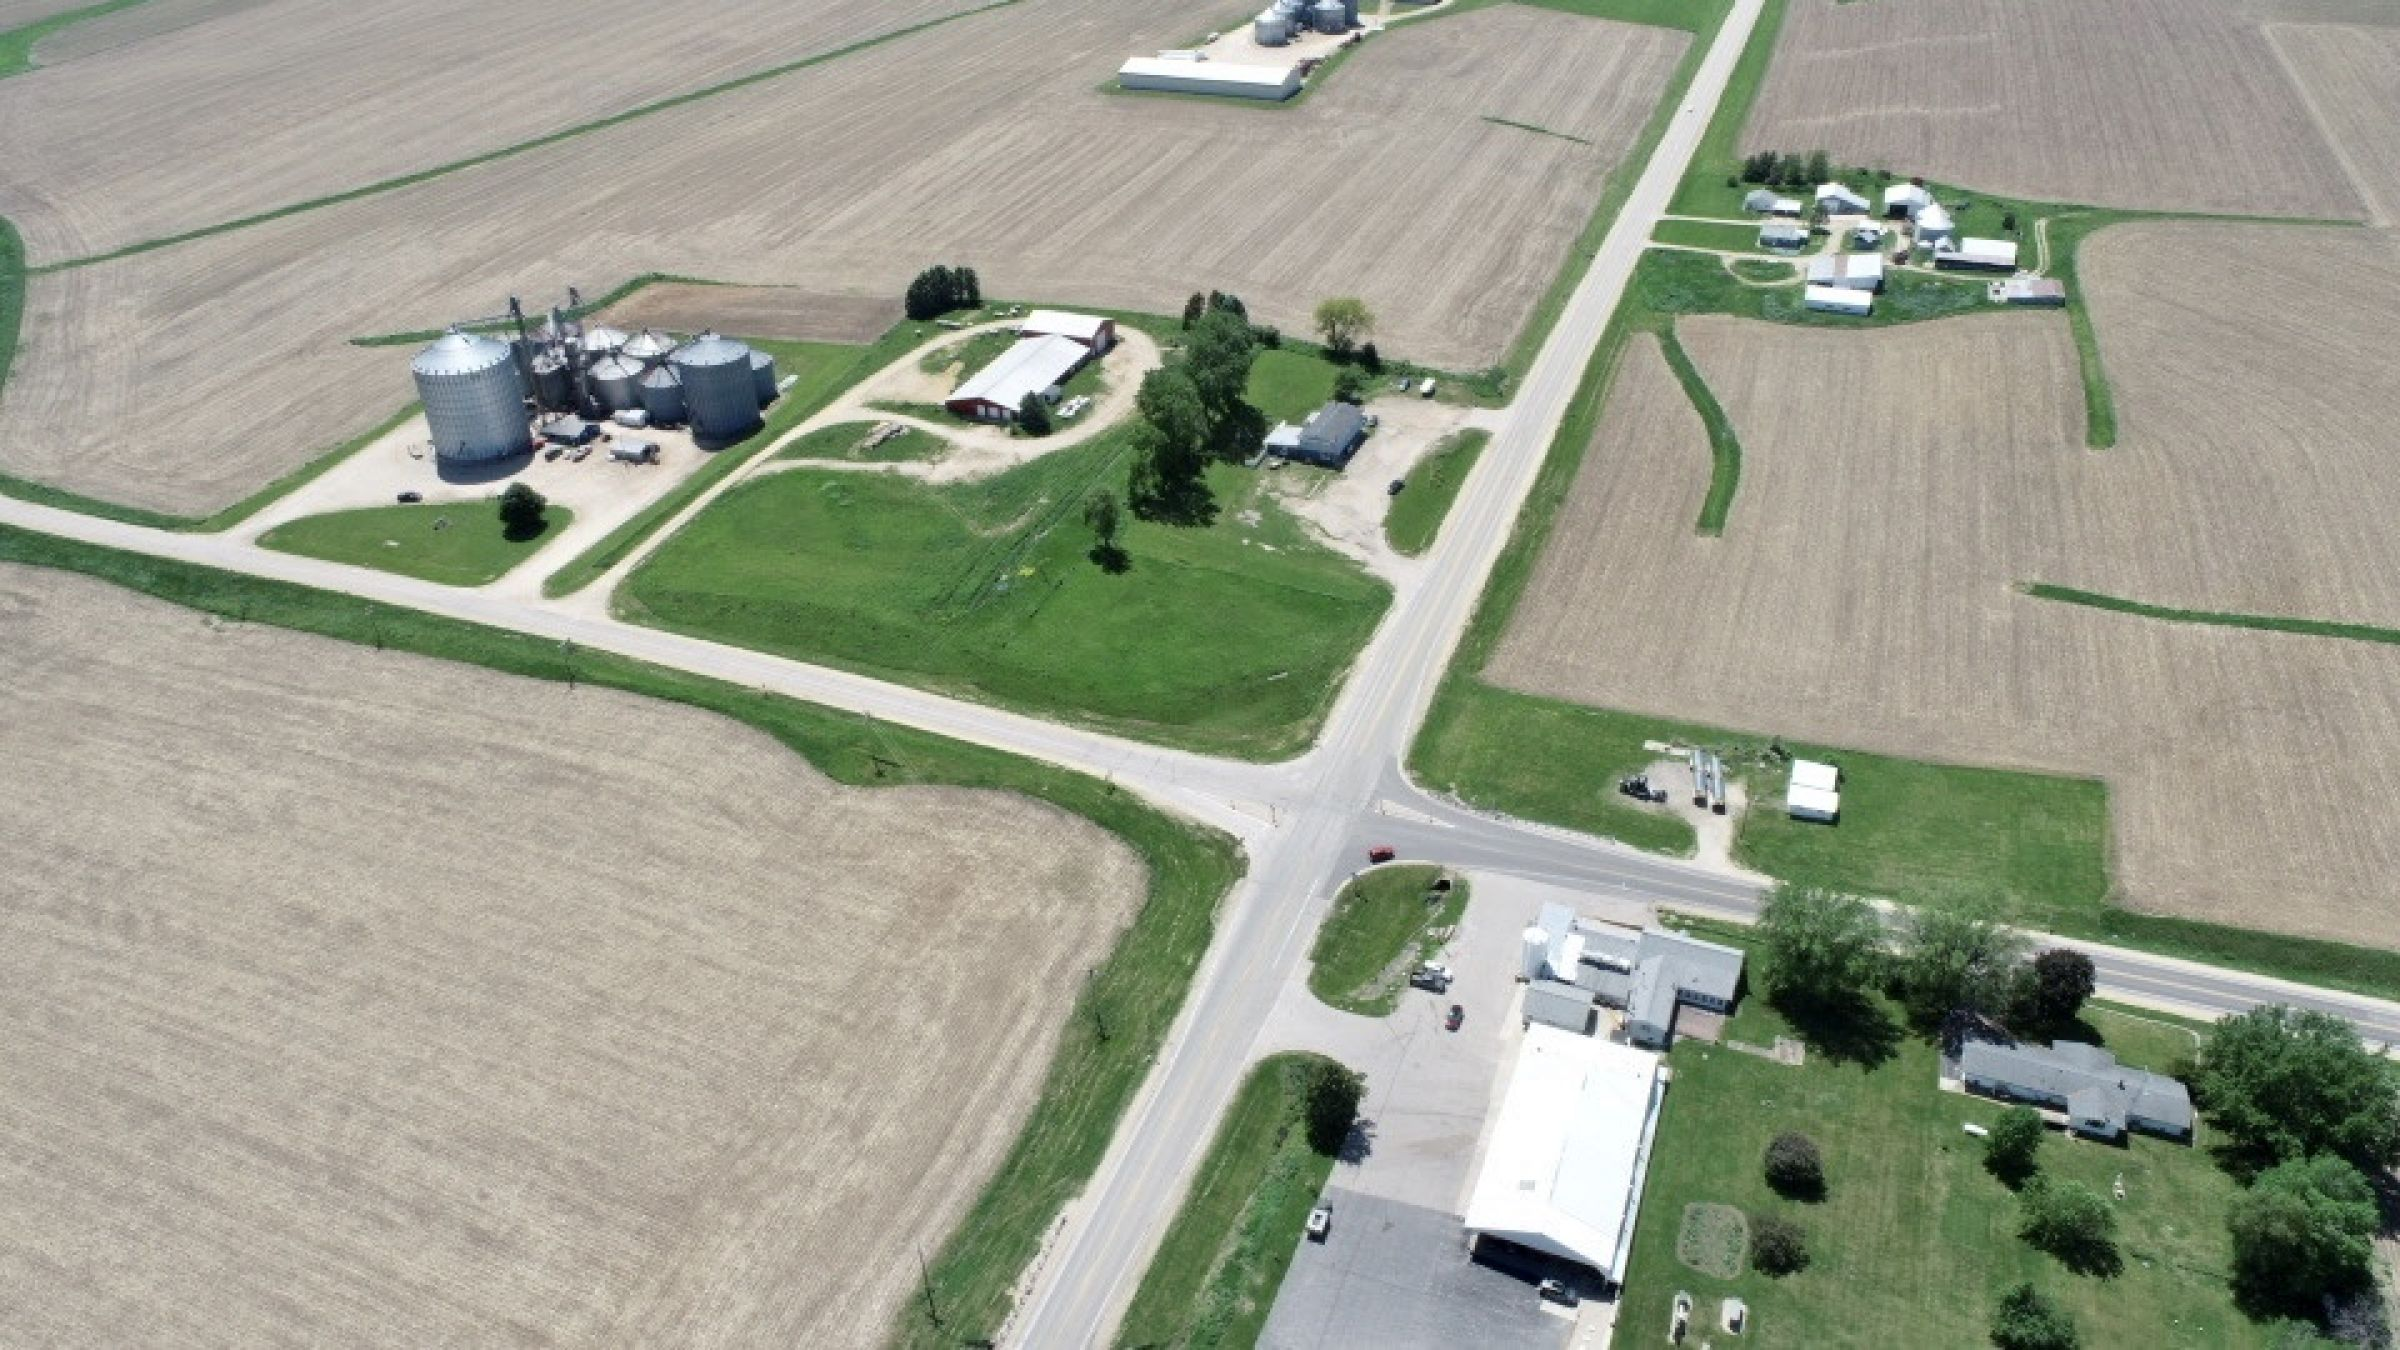 land-commercial-lafayette-county-wisconsin-1-acres-listing-number-15560-6-2021-05-28-185524.jpg